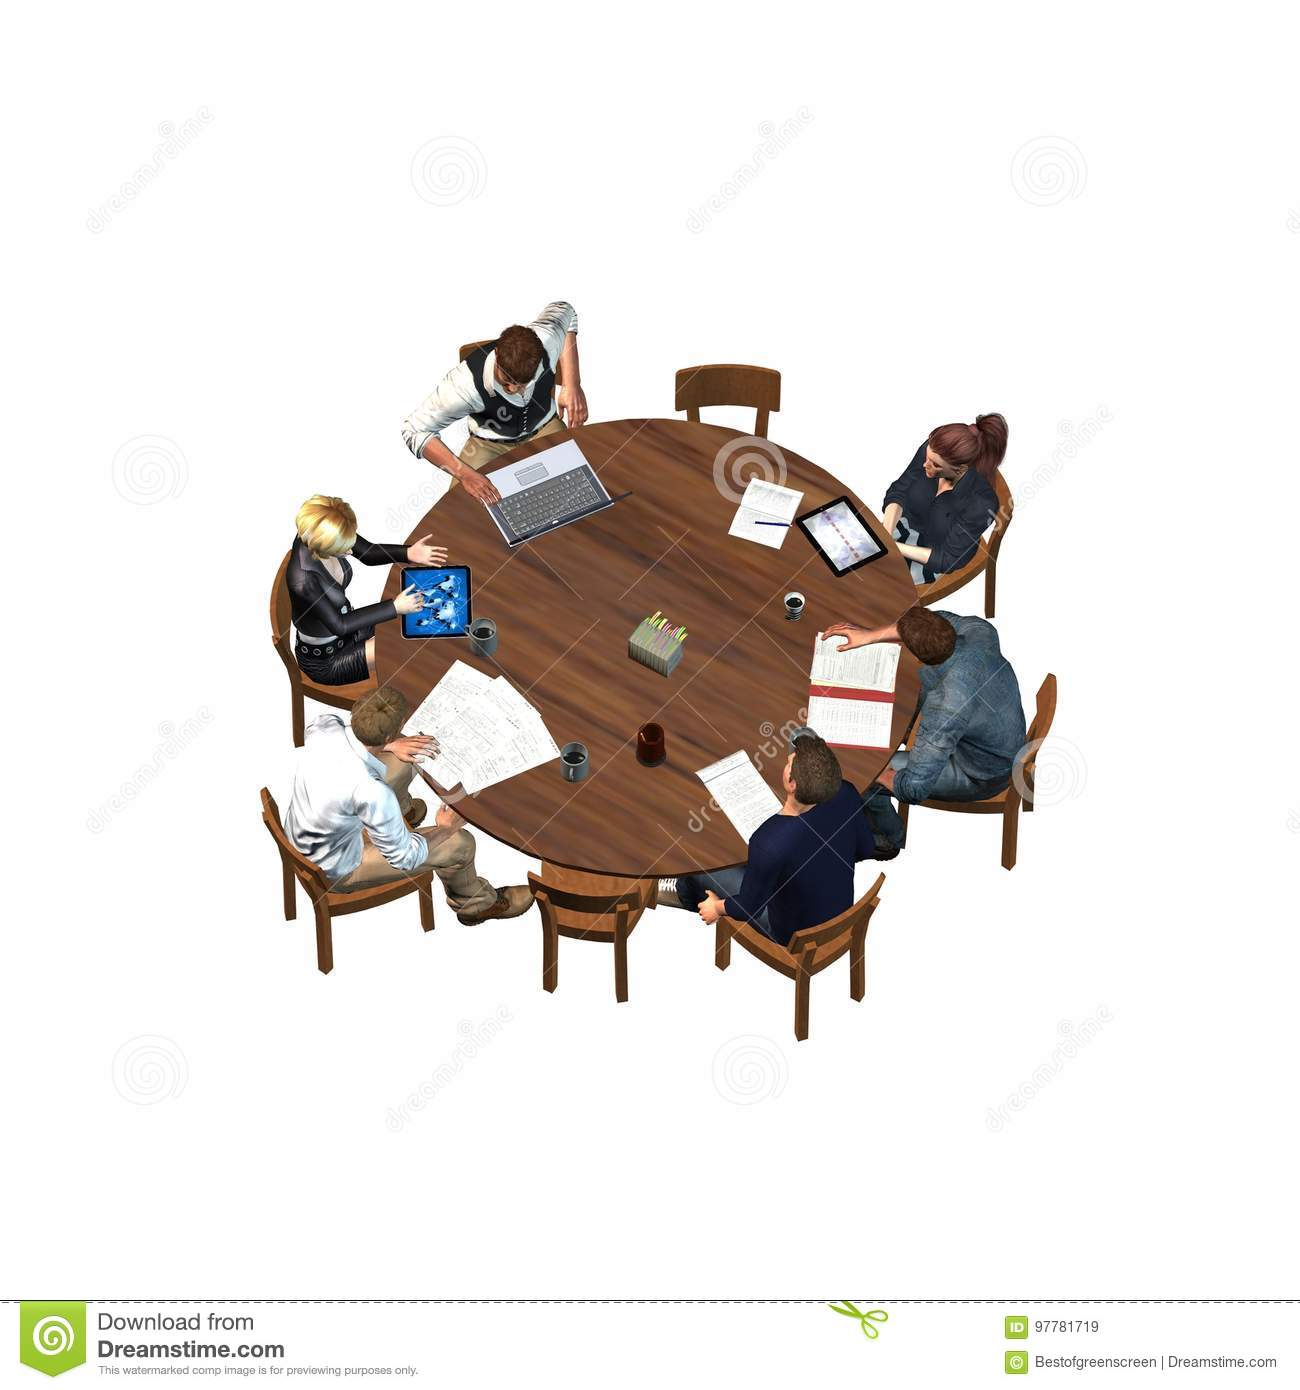 People Sitting At A Round Table In A Meeting - Business